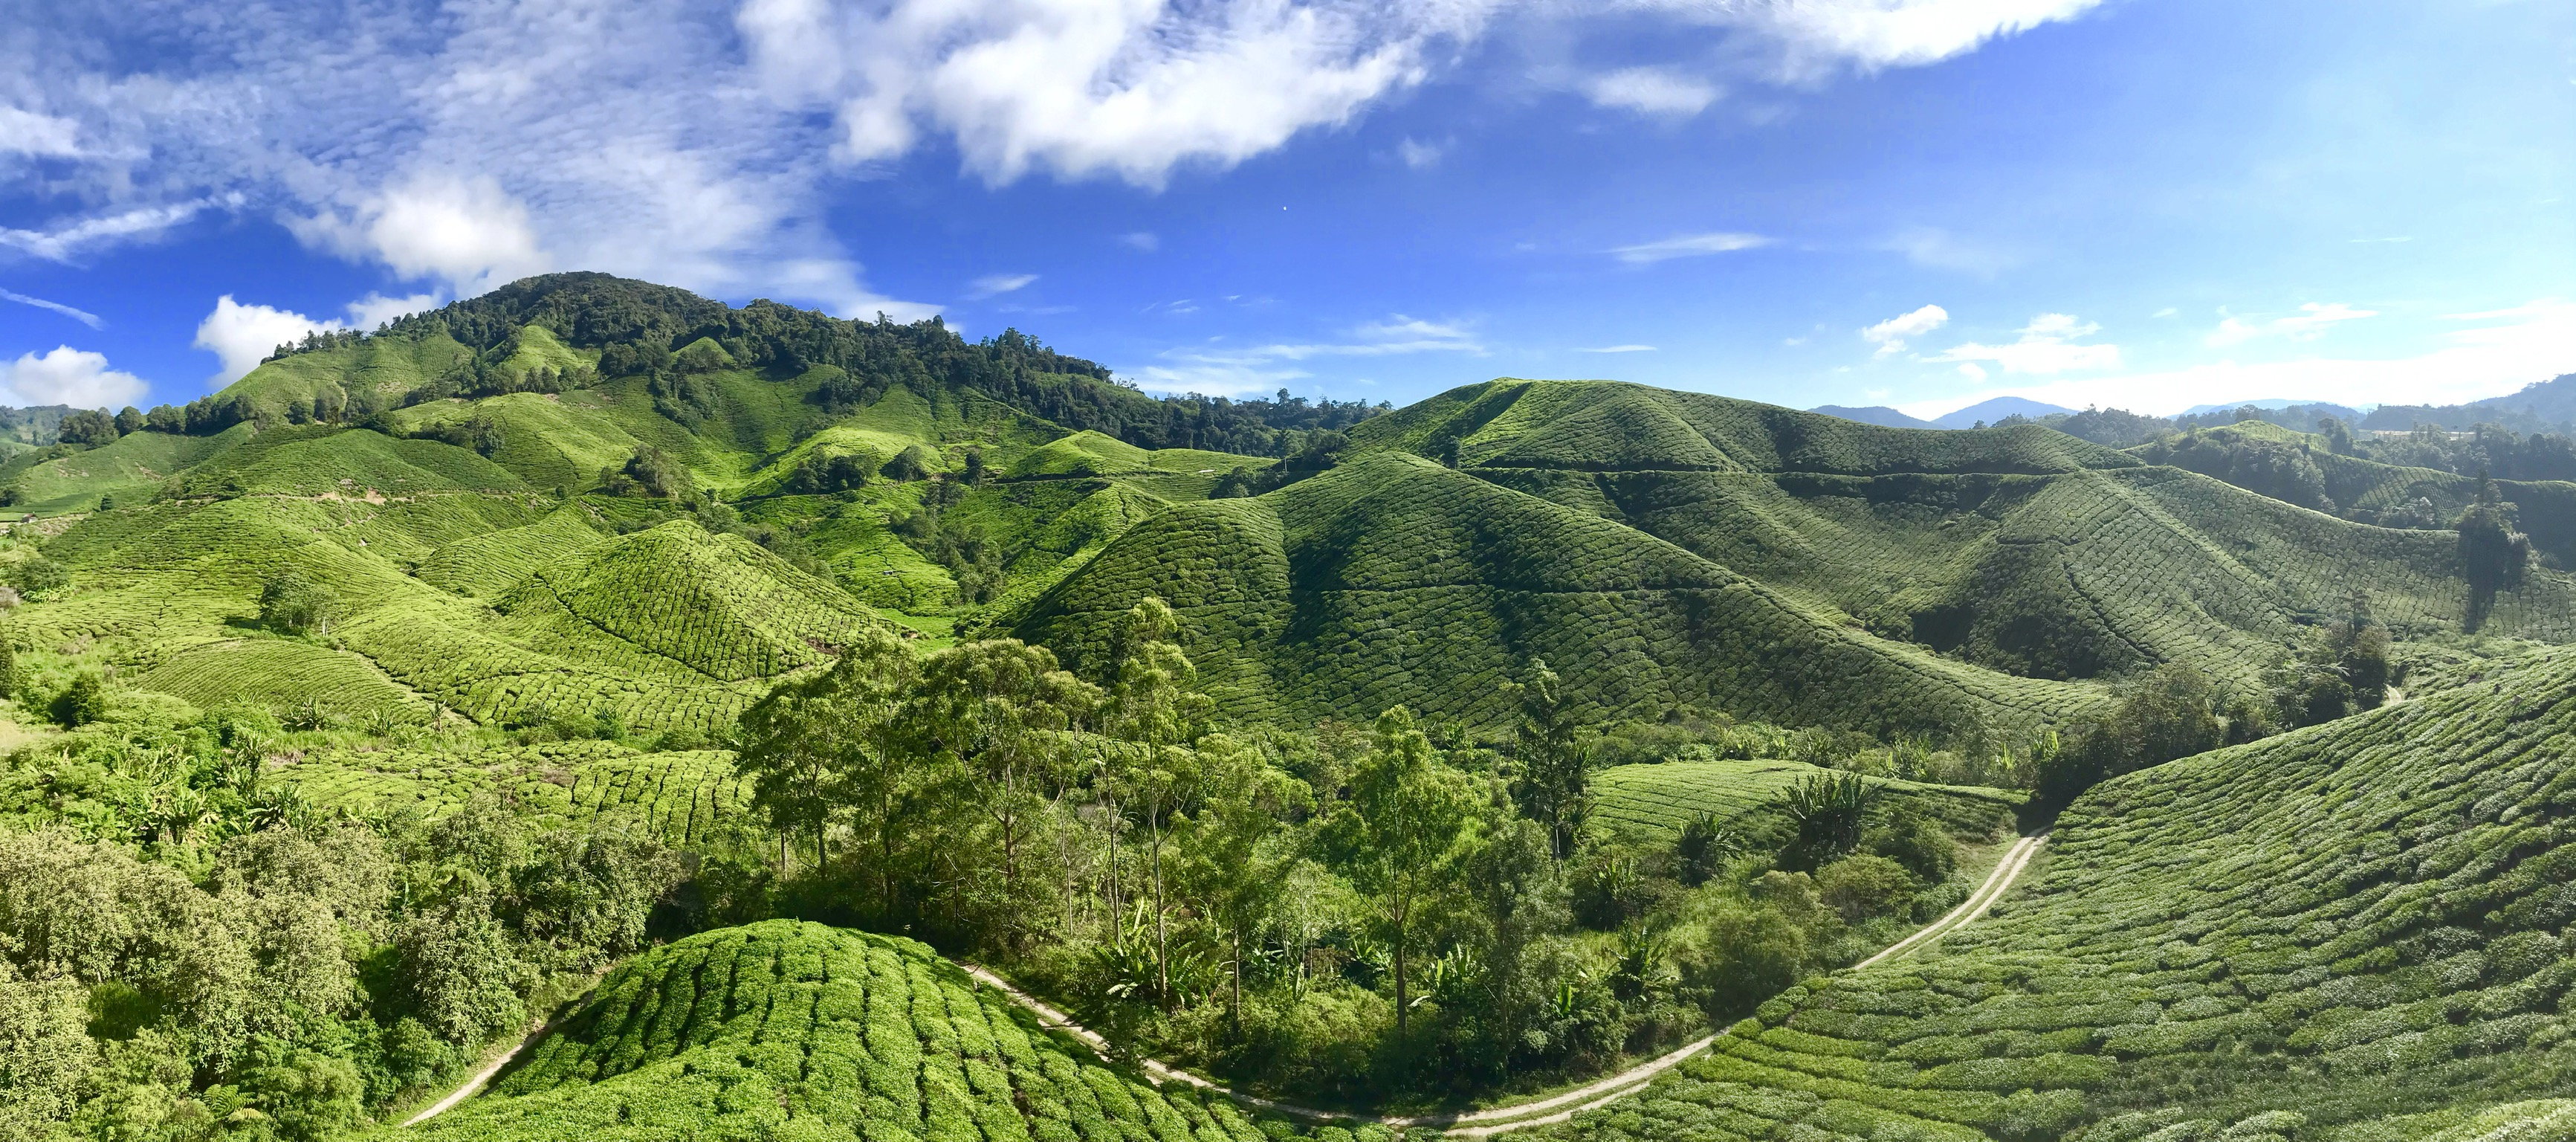 Cameron Highlands - Most Beautiful Places to Visit in Malaysia